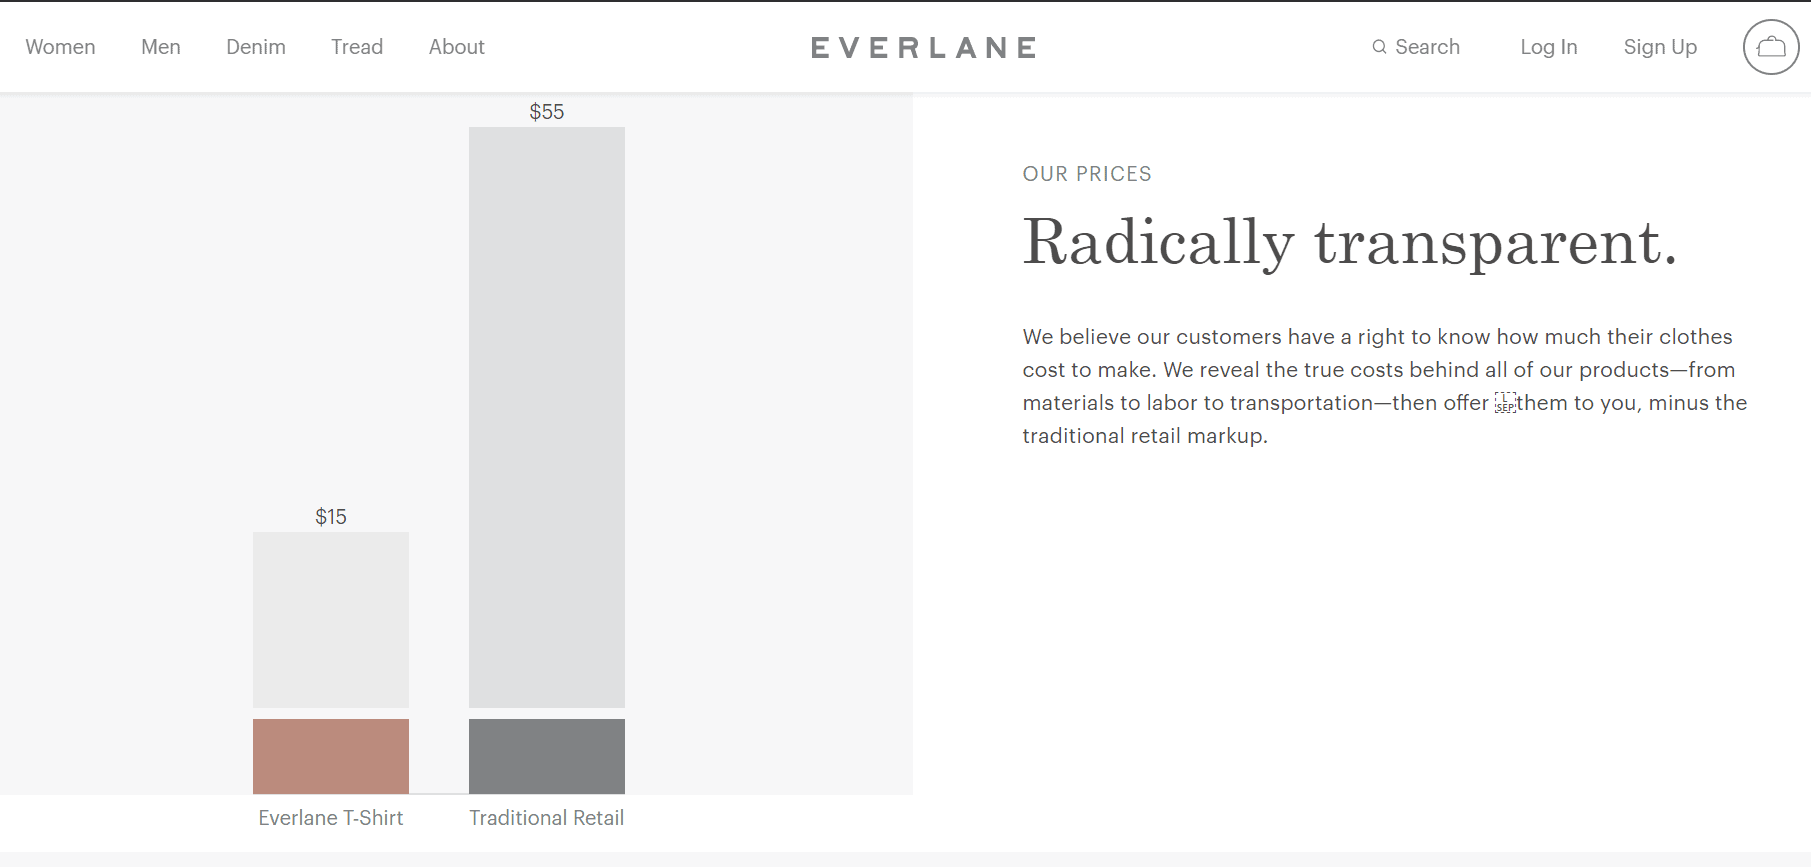 Screenshot of Everlane's website and that shows that they mark their products up 3x less than traditional retailers